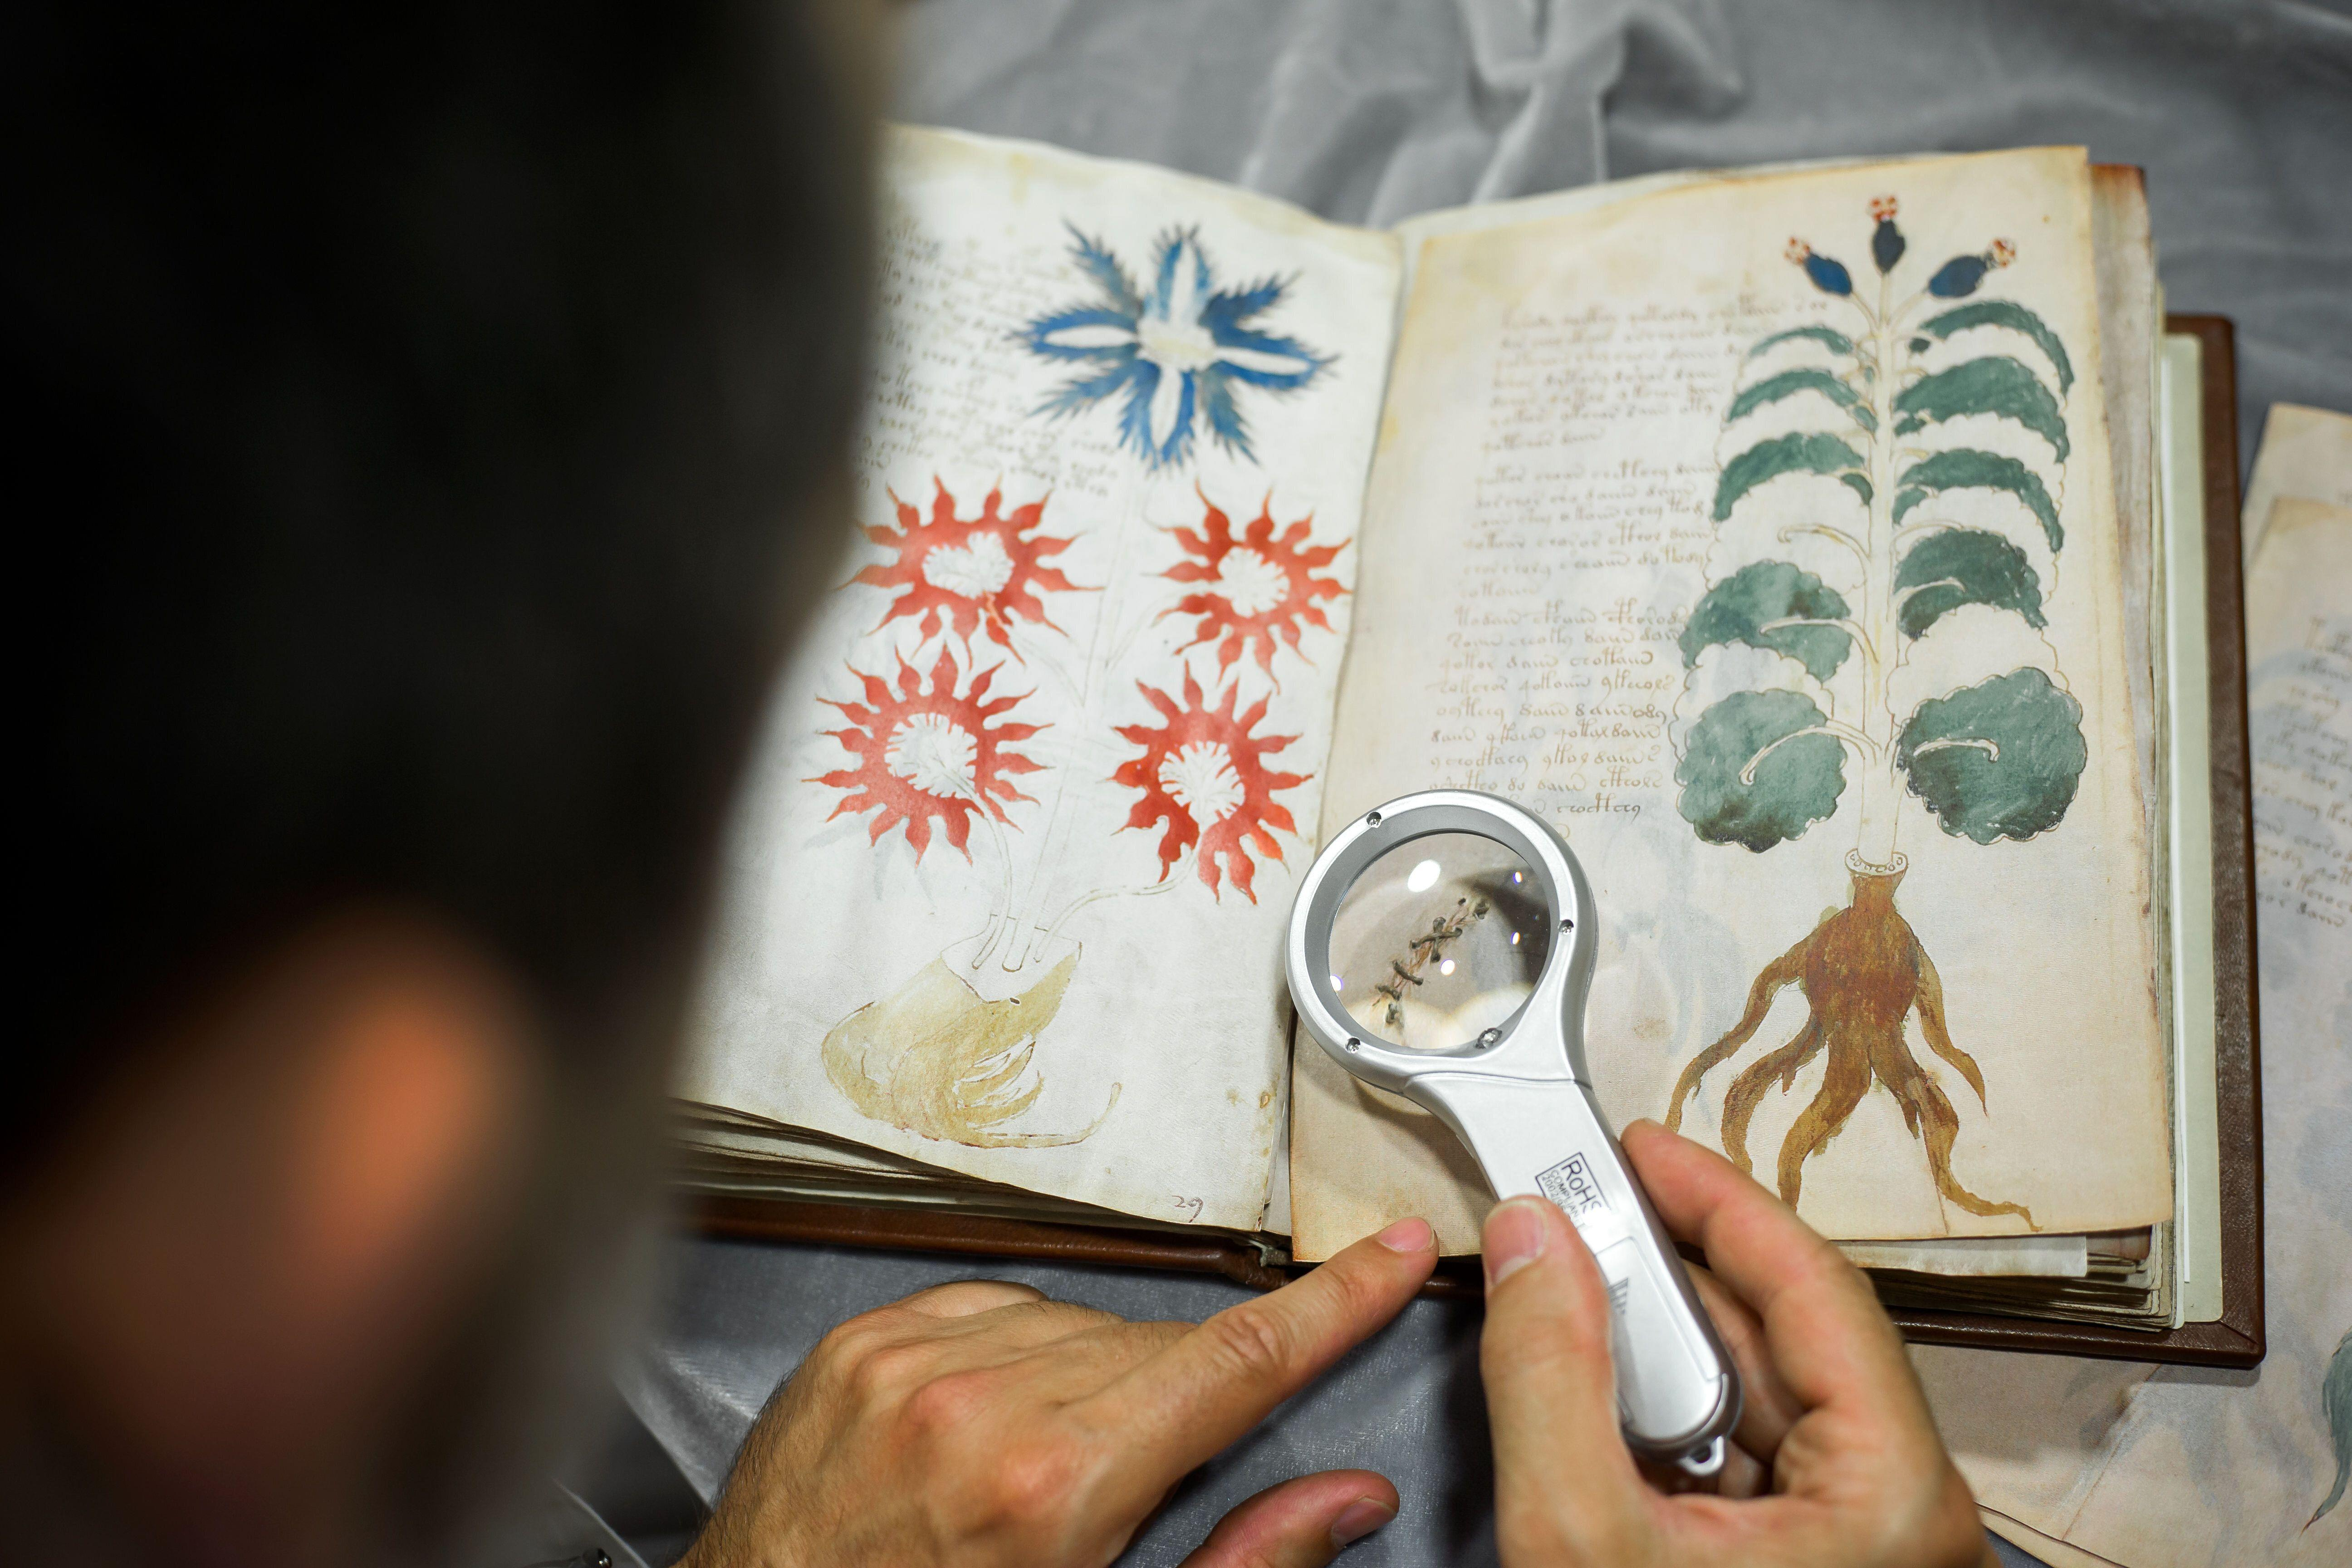 'World's most mysterious manuscript' finally decoded after 500 years